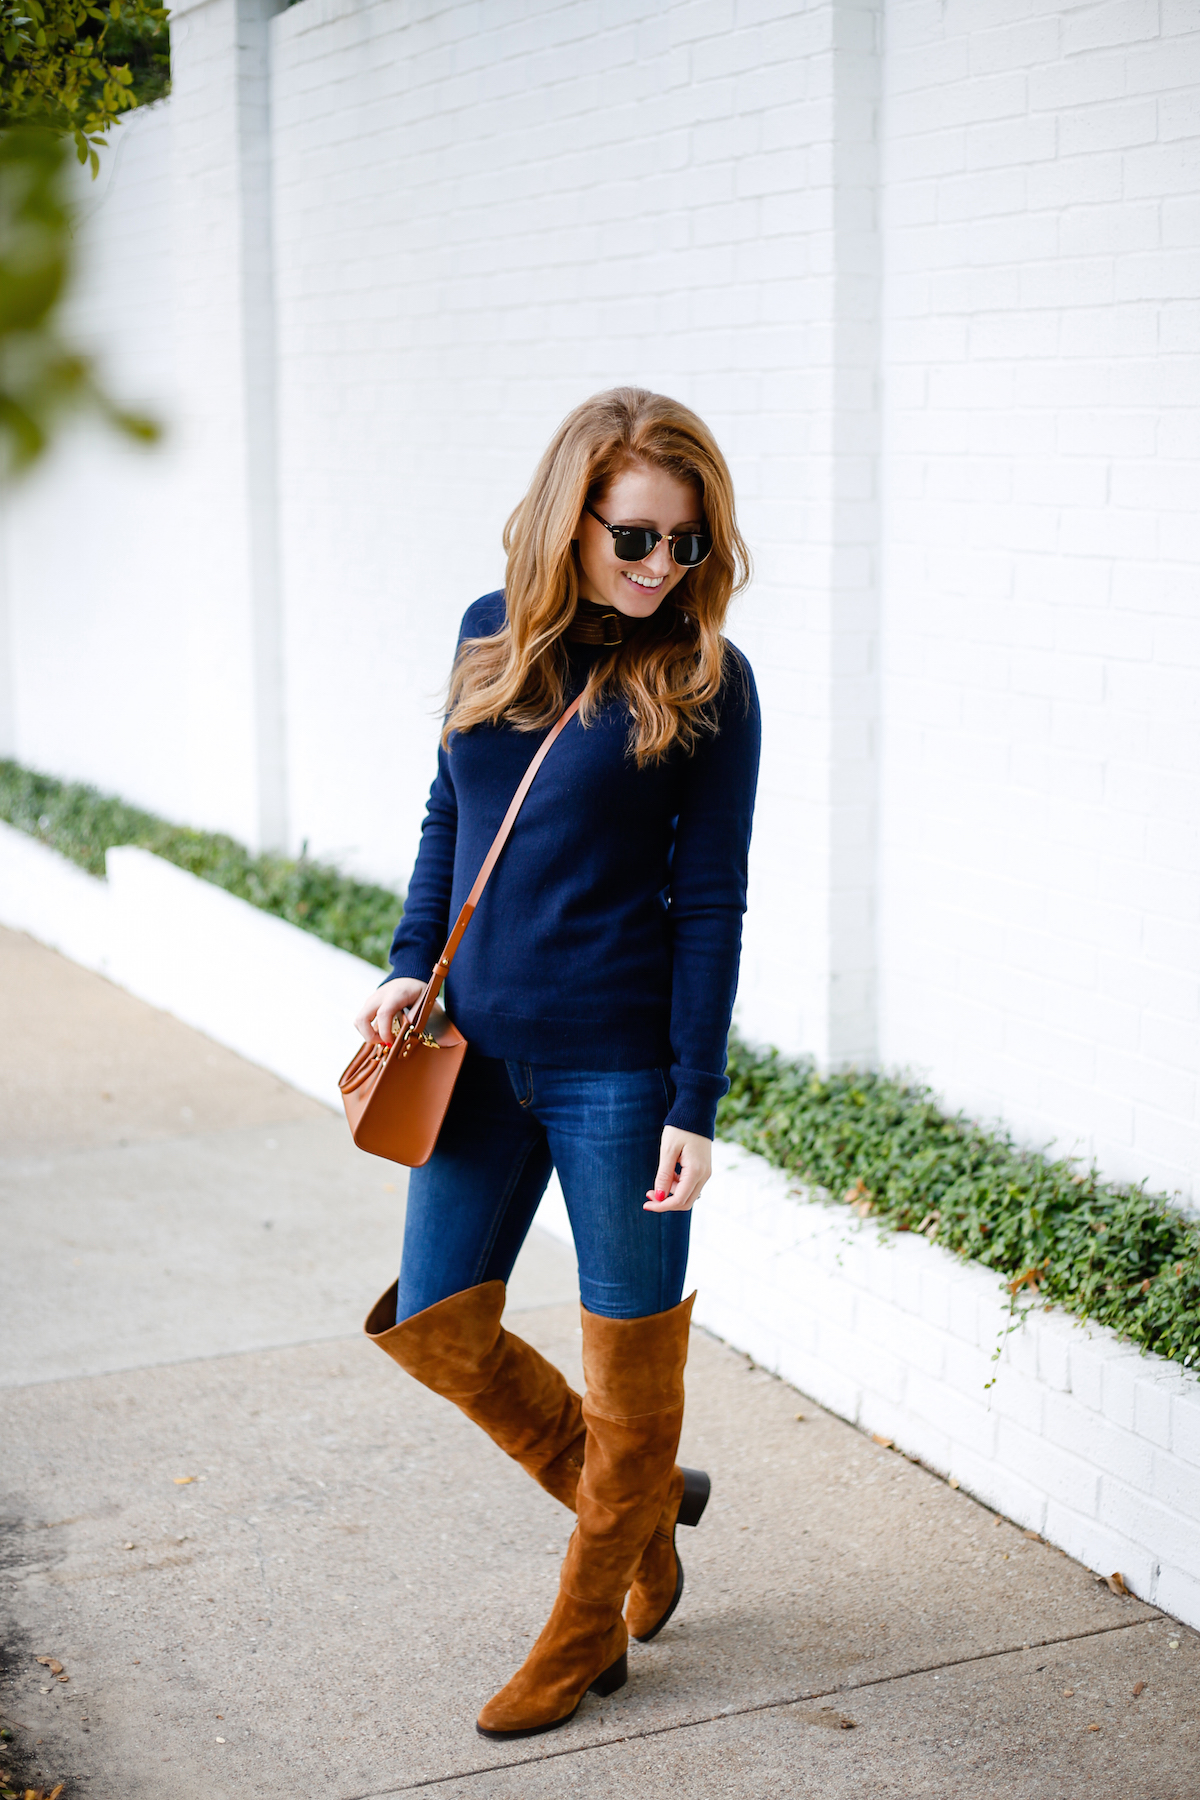 ea0724f56 j-crew-over-the-knee-boots-and-skinny-jeans-on-design-darling ...